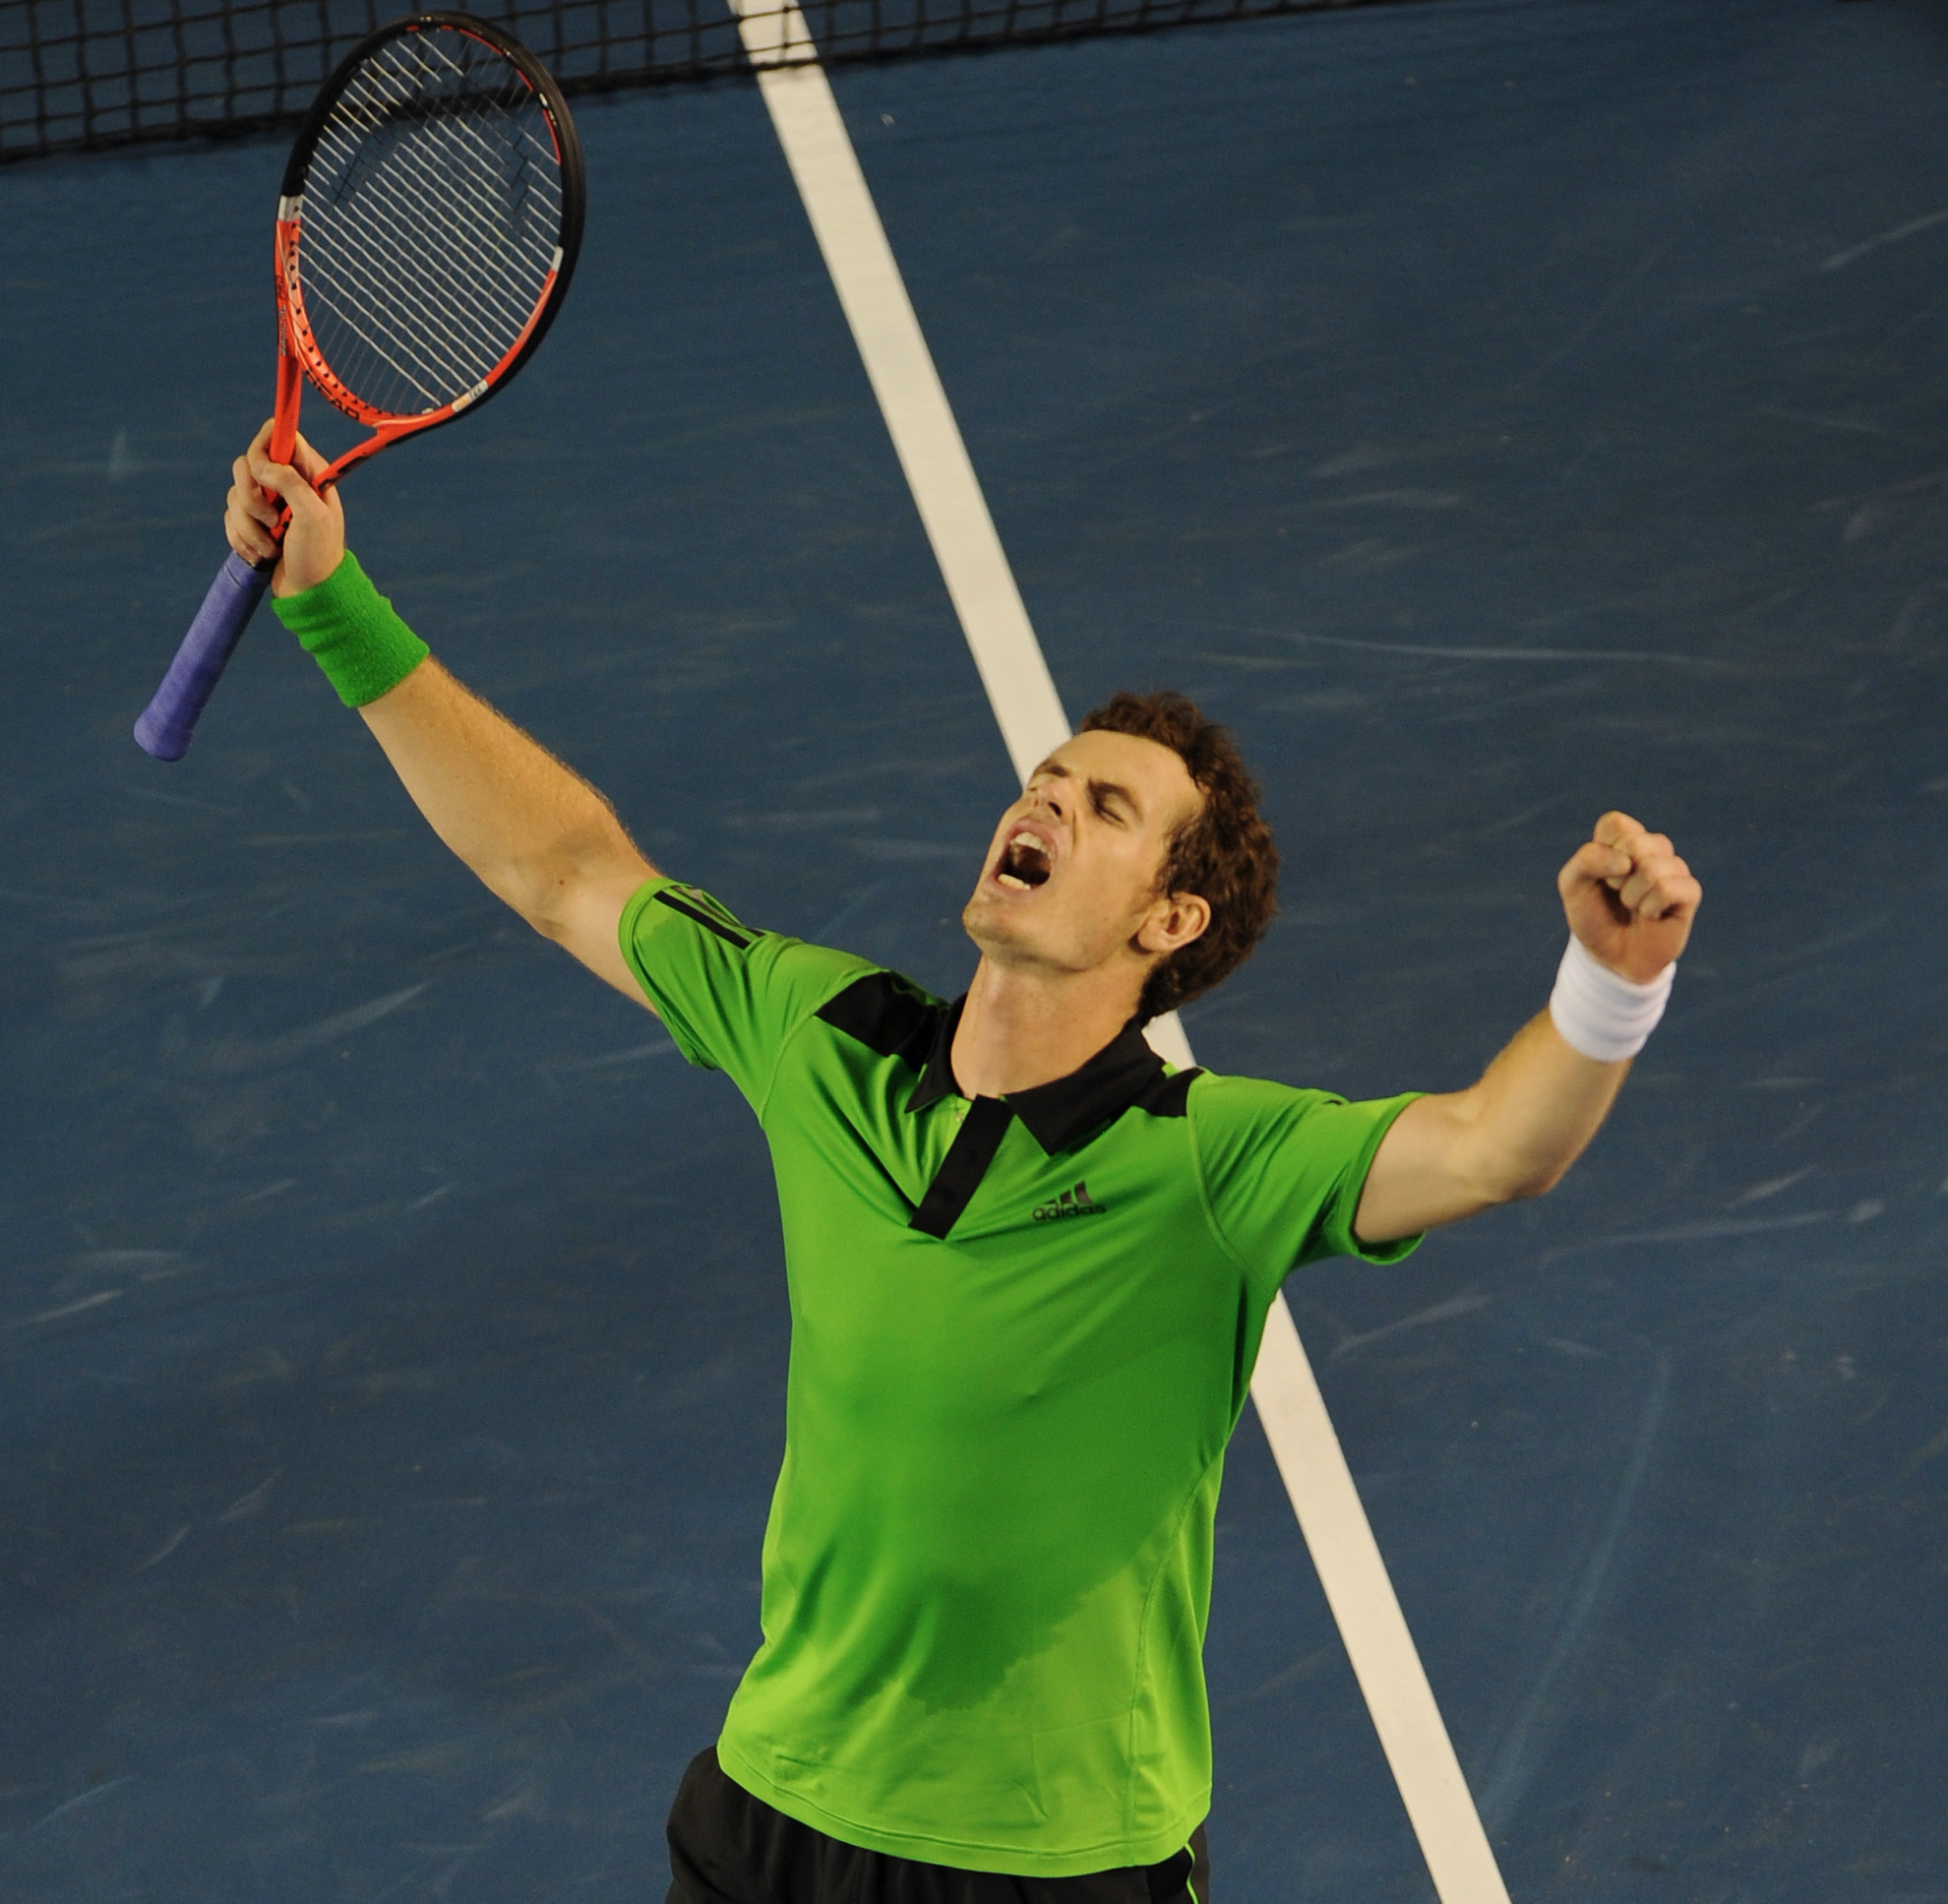 In yet another polo shirt, Murray makes his third Slam final, this time losing to Djokovic.